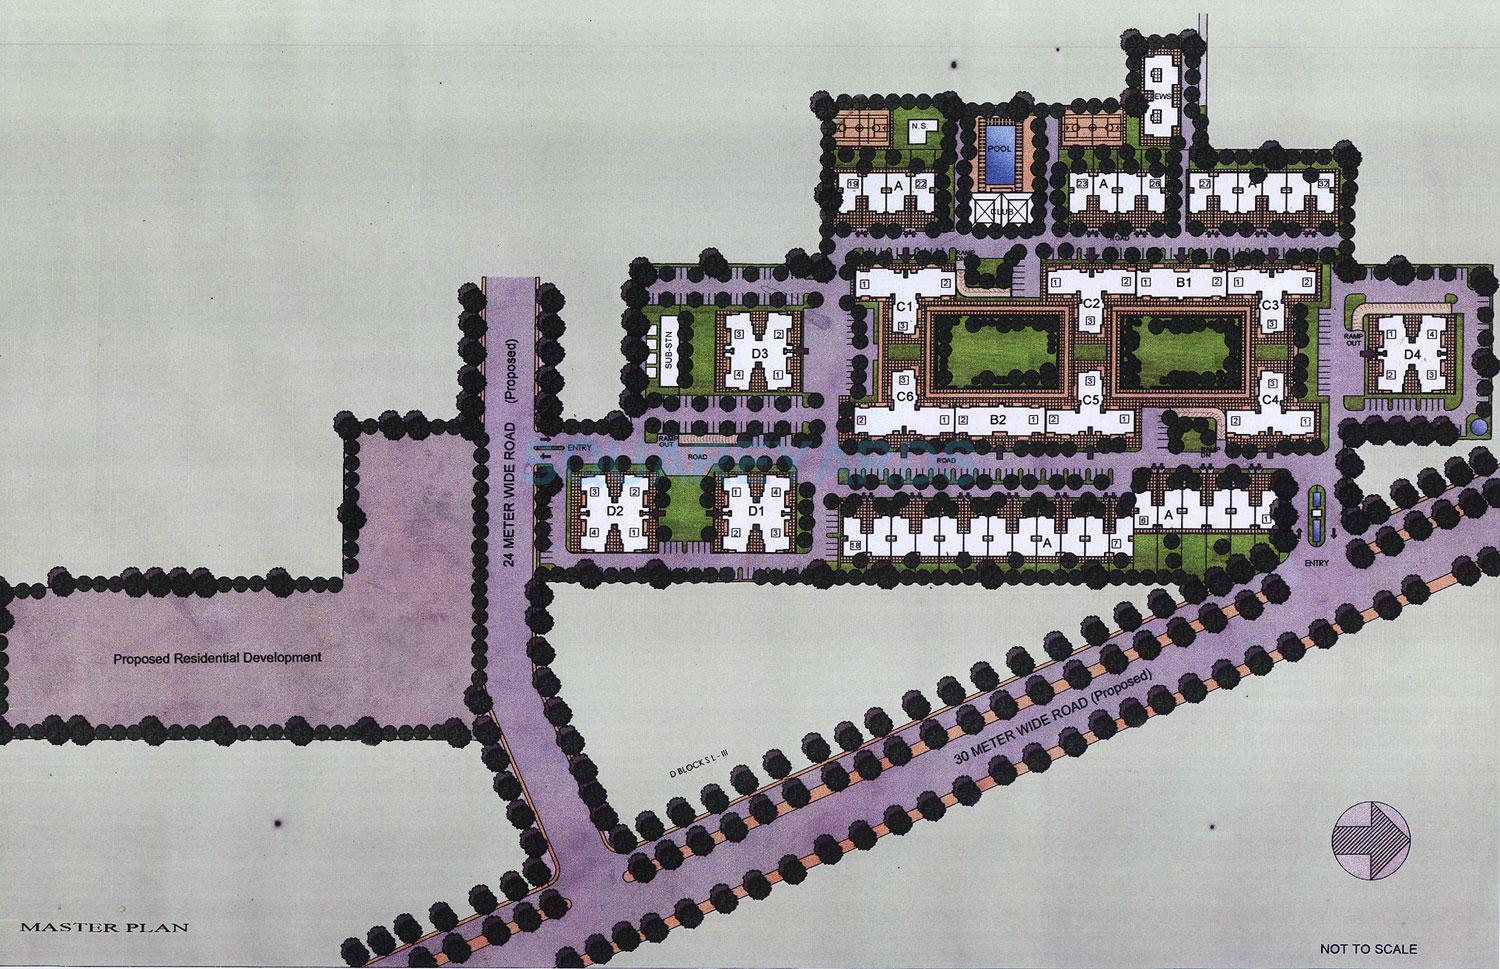 clarion the legend master plan image1